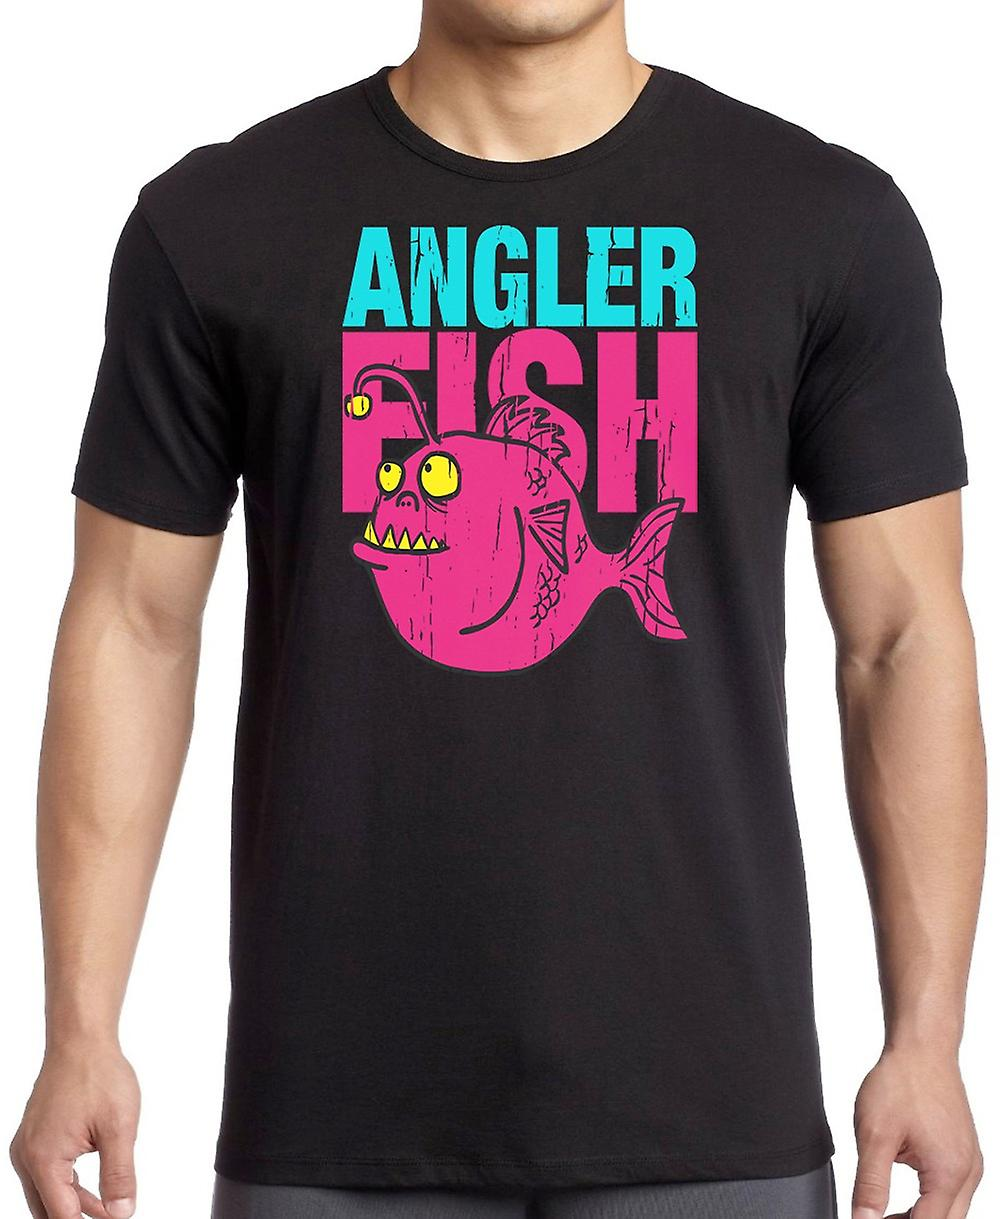 Angler Fish - Cool Predator T Shirt